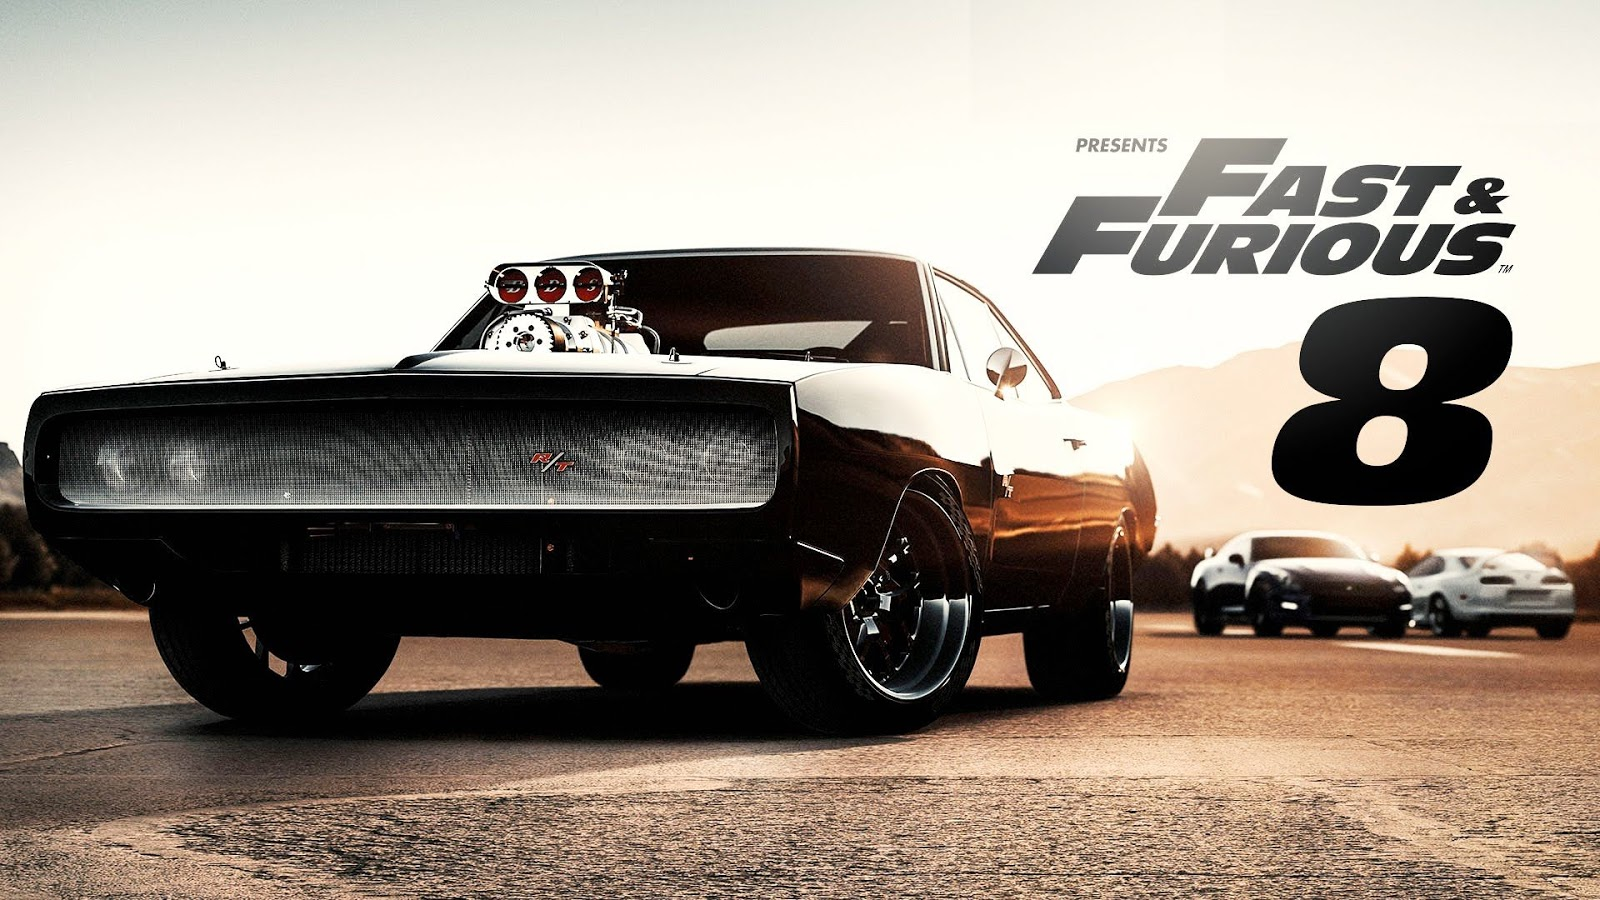 Watch Movie Fast & Furious 8 : The Fate of the Furious (2017)